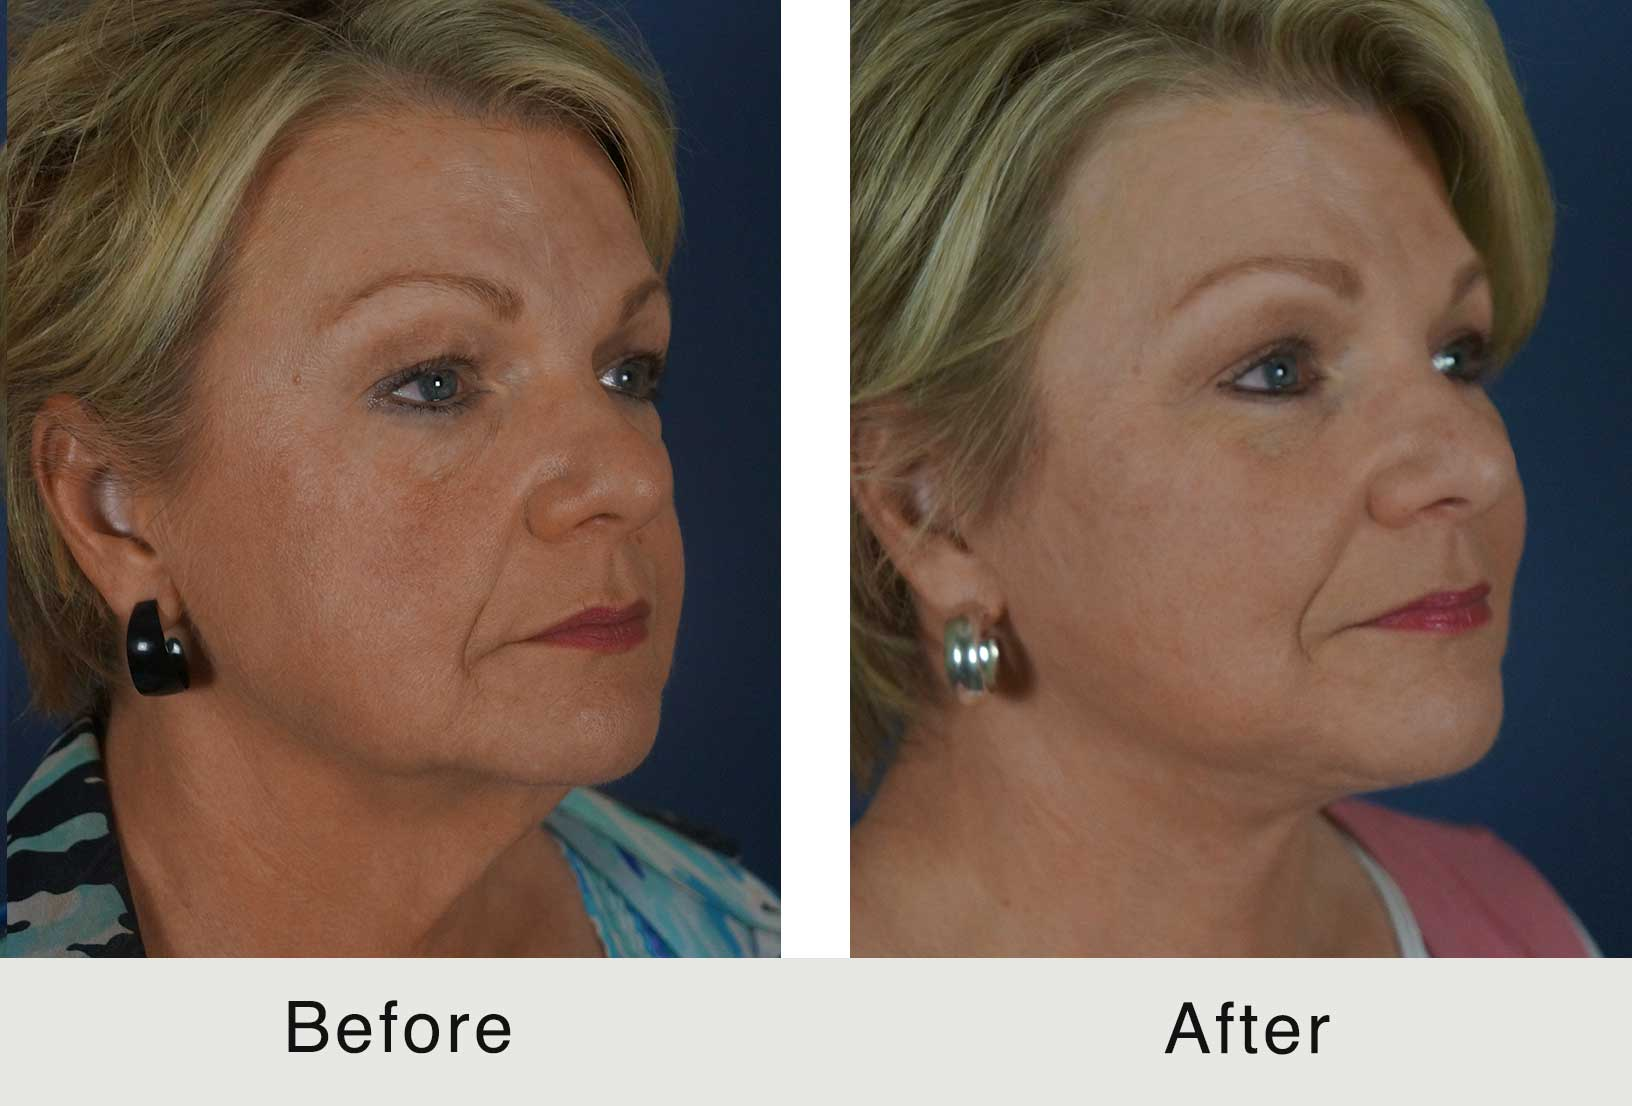 Facial lifting procedures want